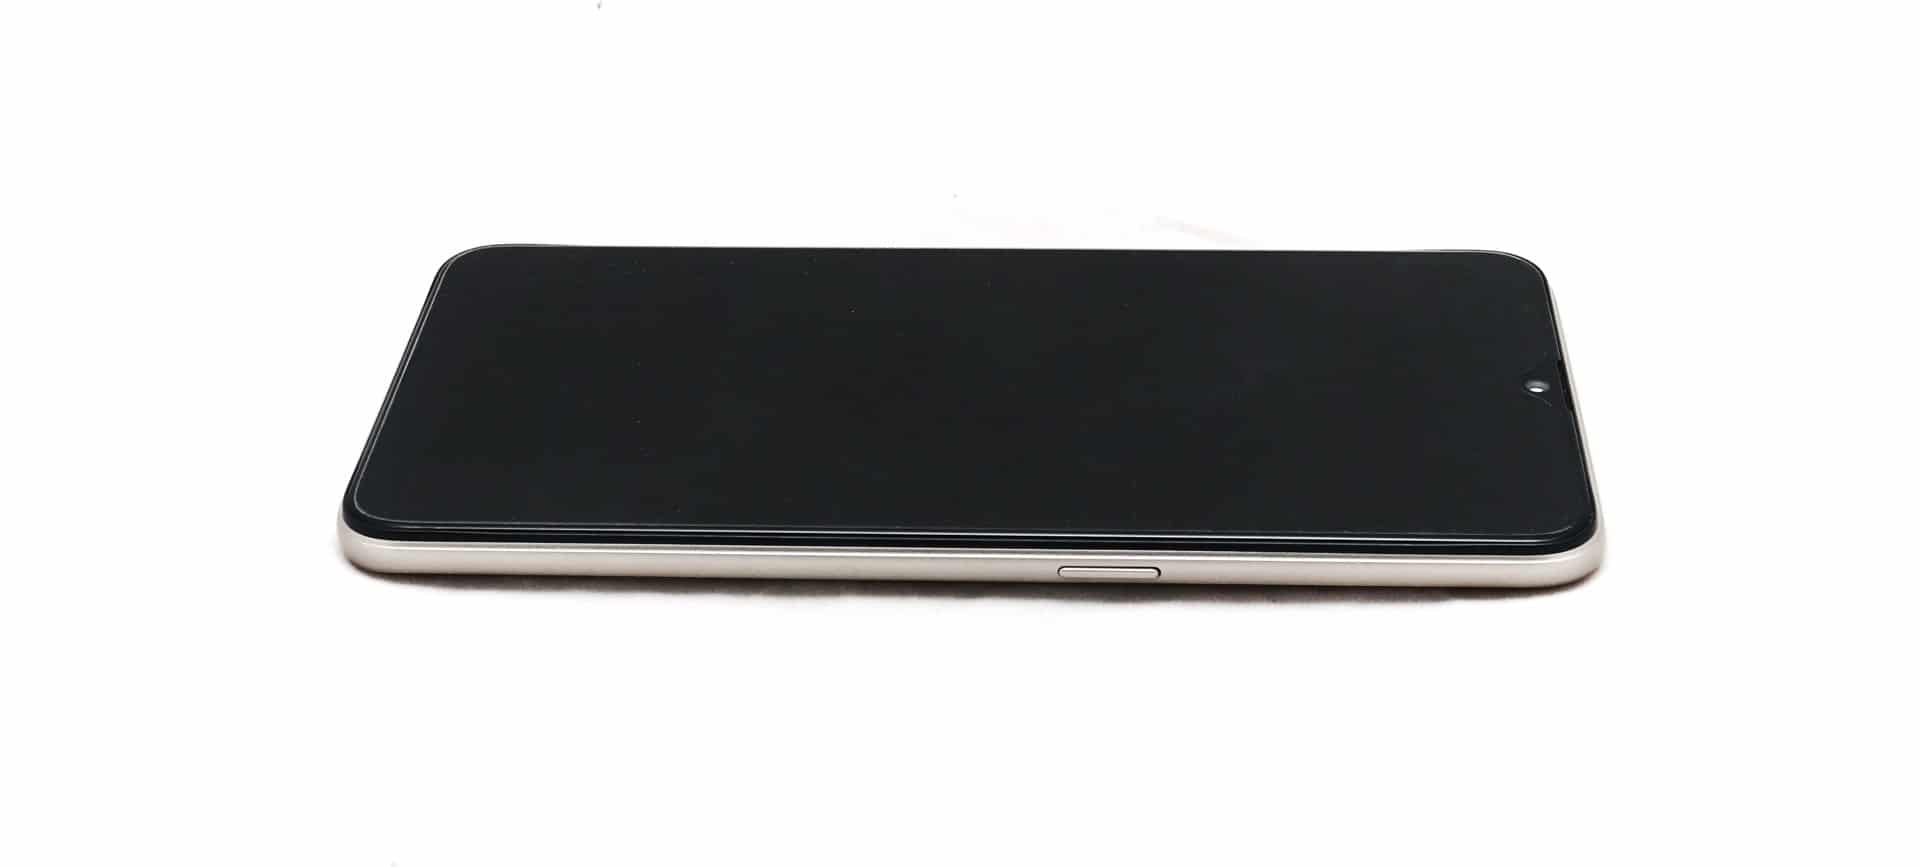 Review: Oppo AX7 – Pickr